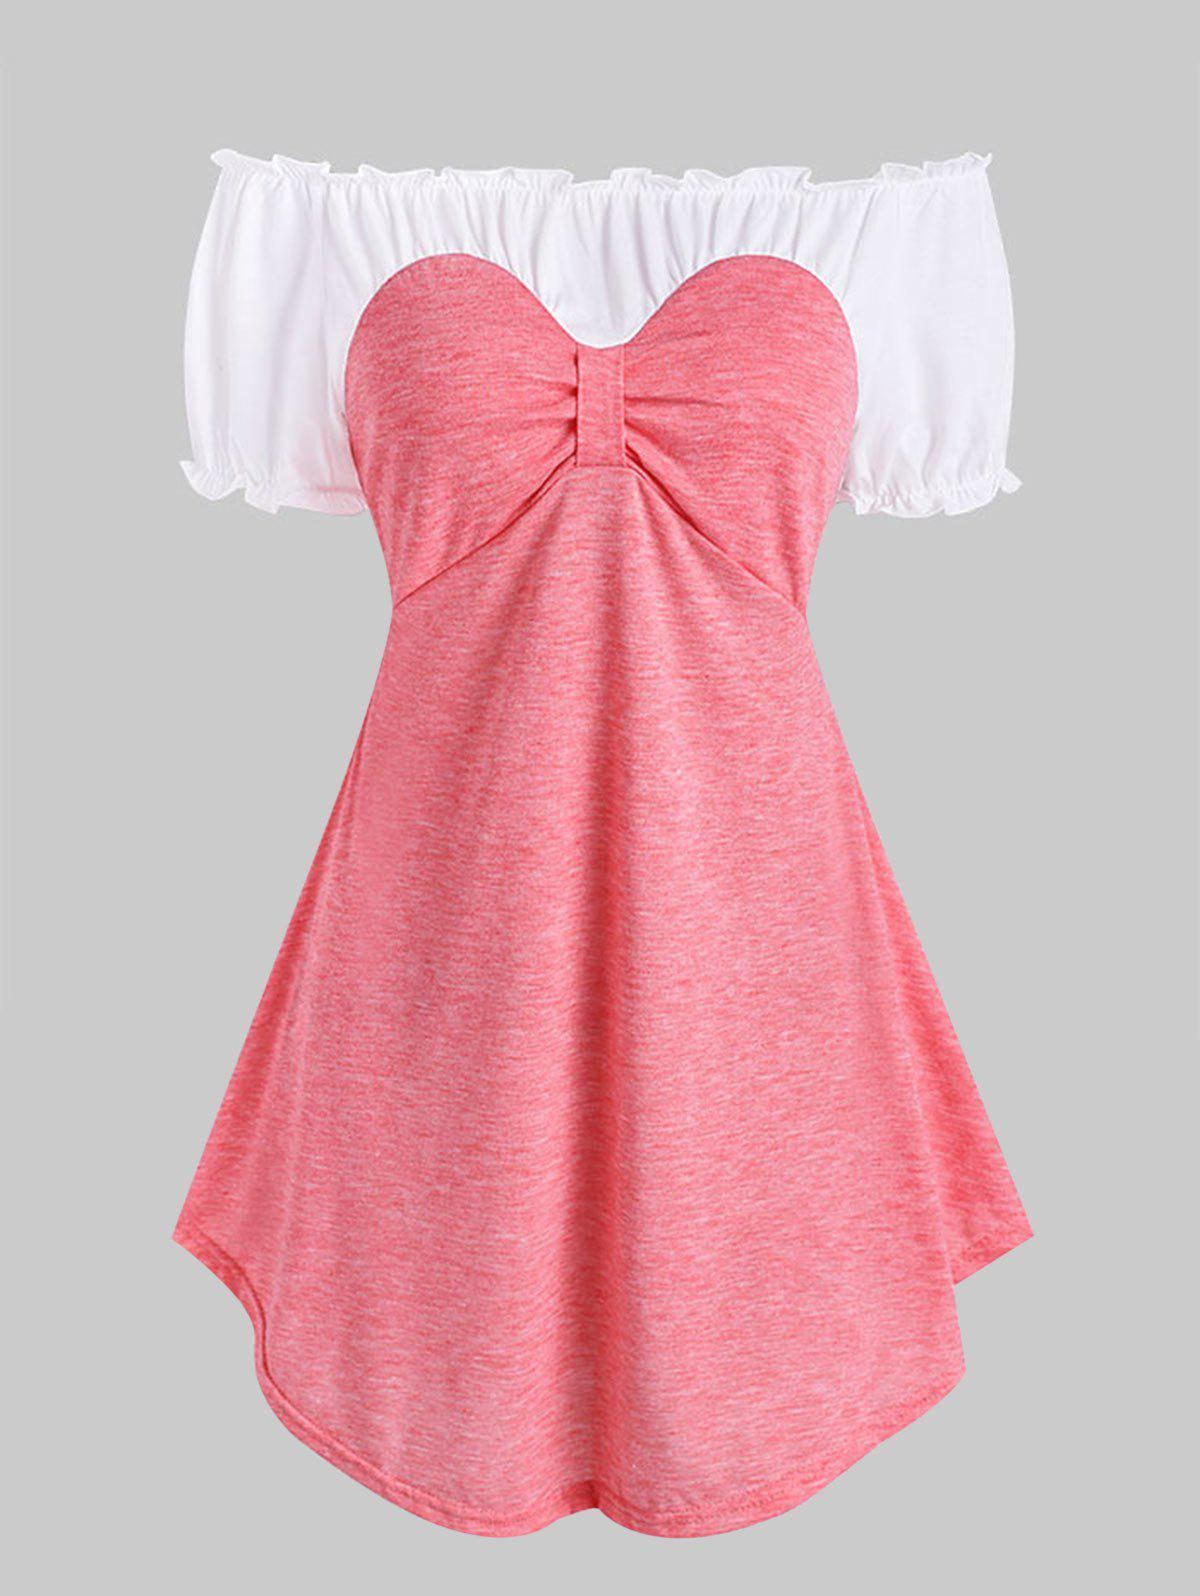 Frilled Two Tone Bow Tunic Top - LIGHT PINK 2XL